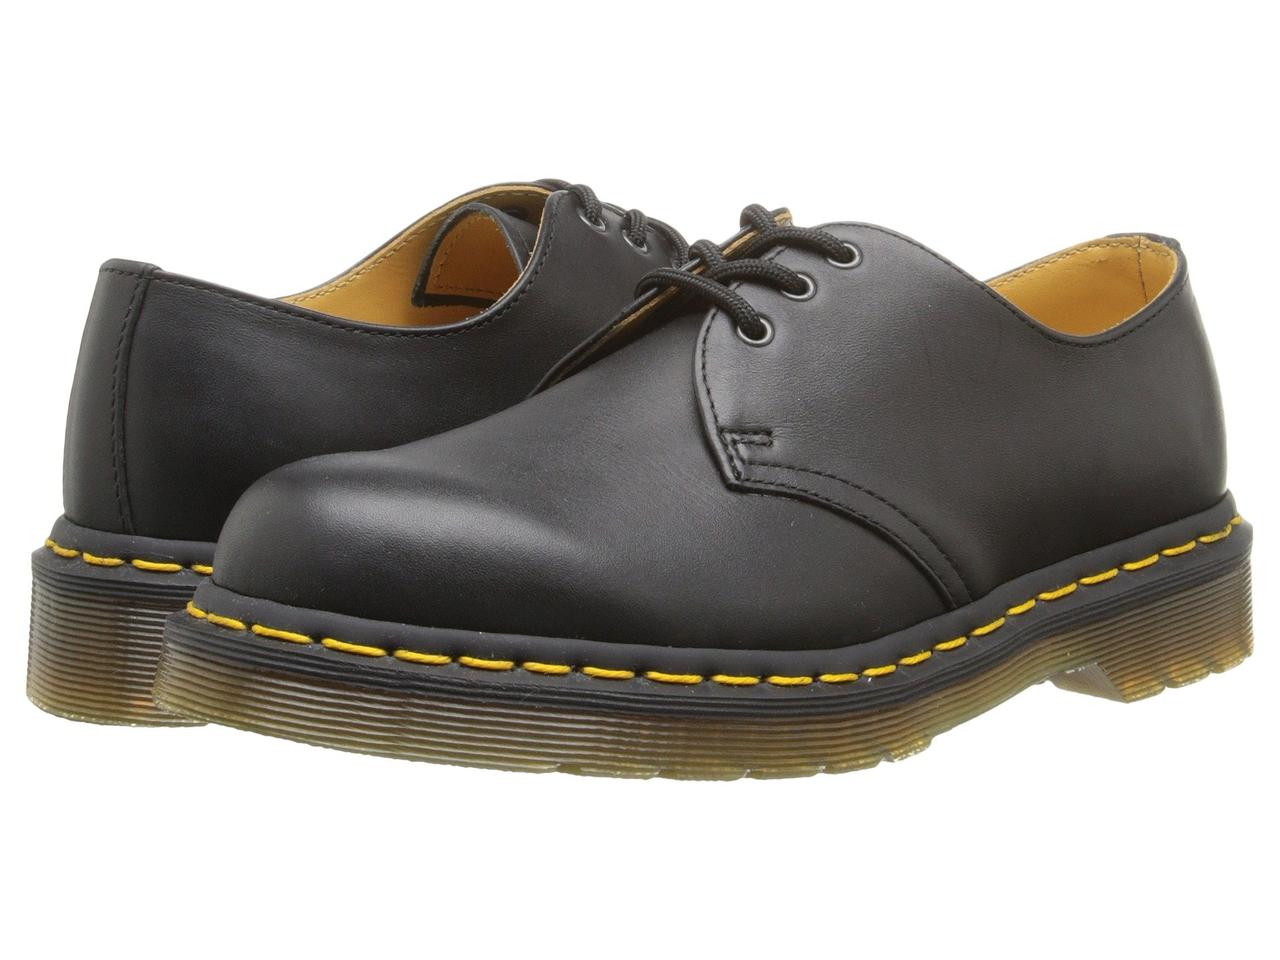 Туфли (Оригинал) Dr. Martens 1461 3-Eye Gibson Black Nappa Leather